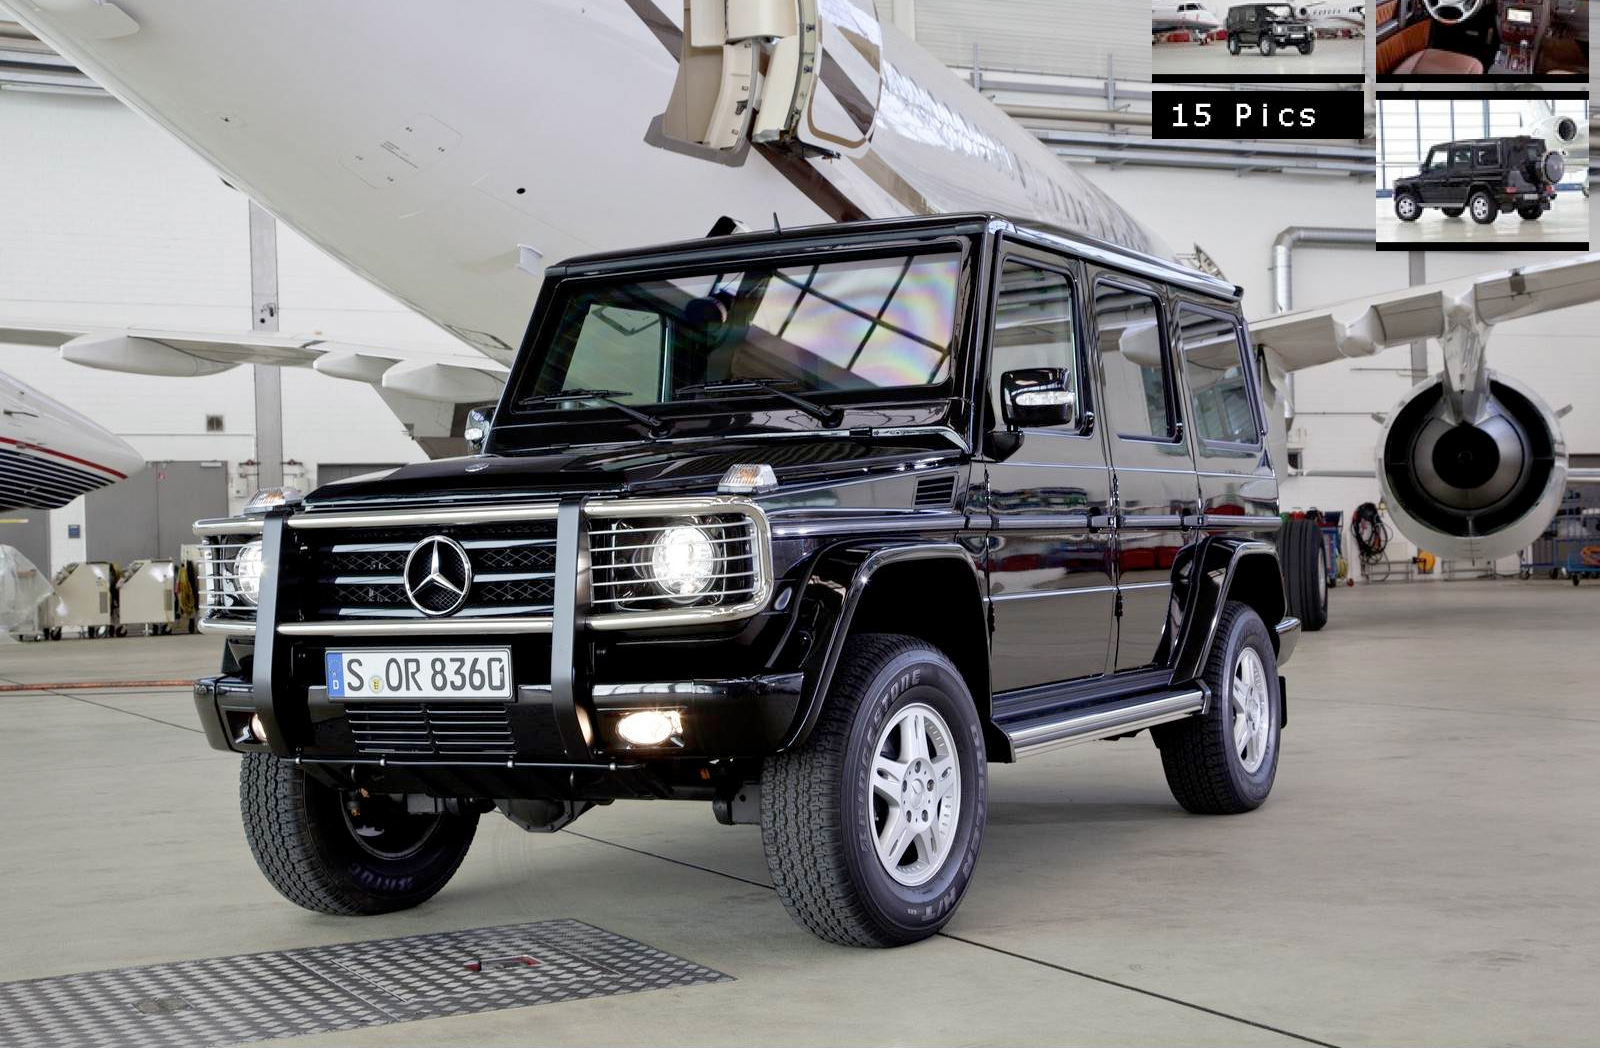 motorcycles ivanitsky rovers g trucks evgeny pinterest benz jeeps land mercedes super by square wagon car pin jeep stuff black on